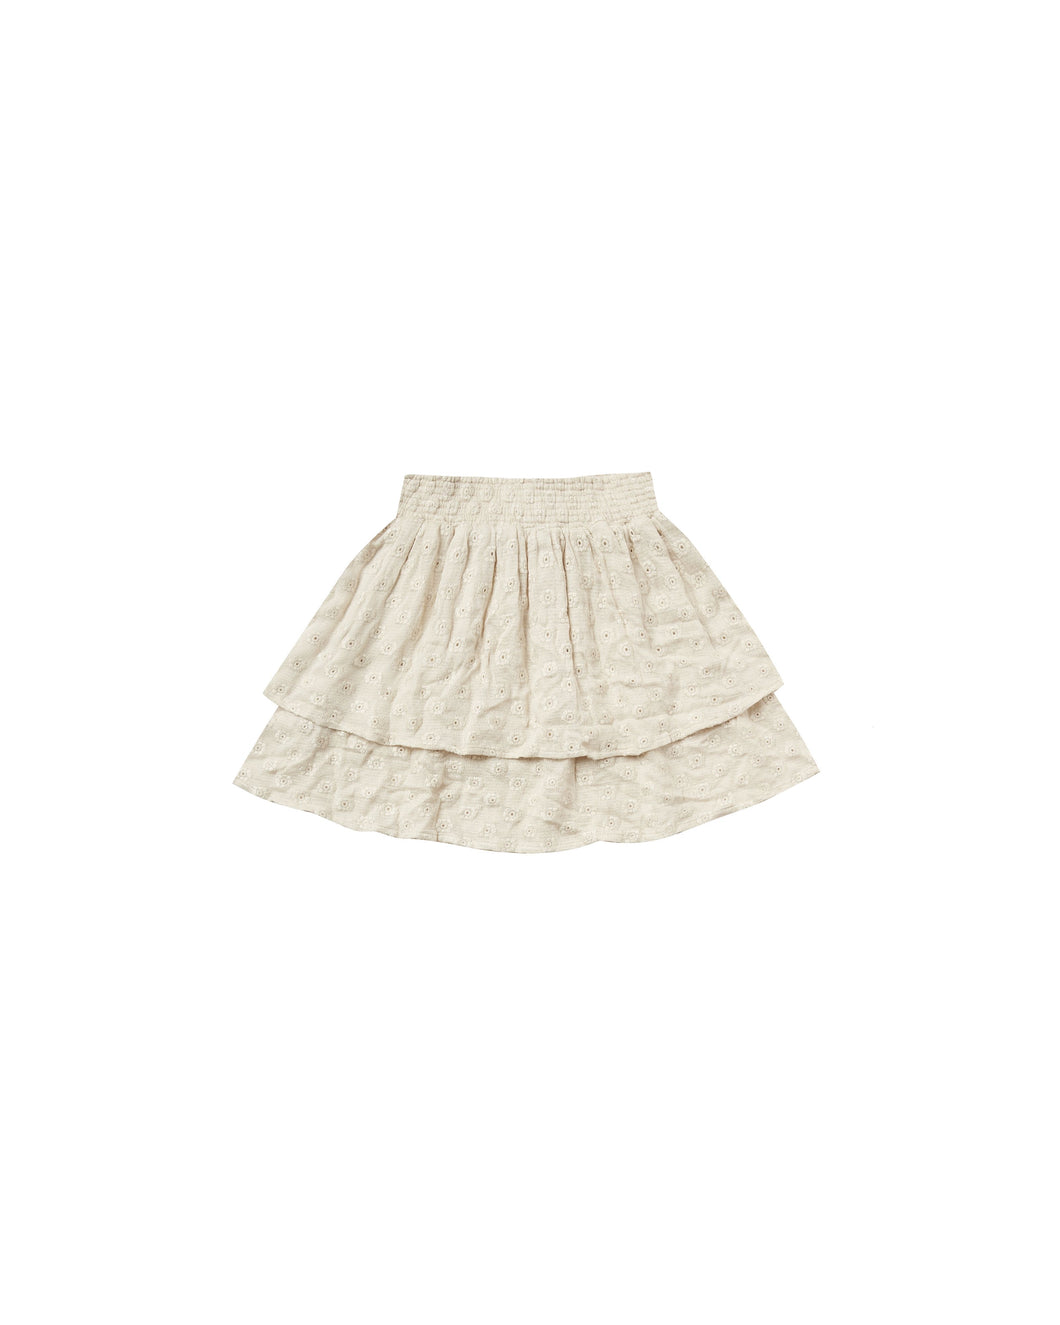 Ditsy tiered mini skirt - natural